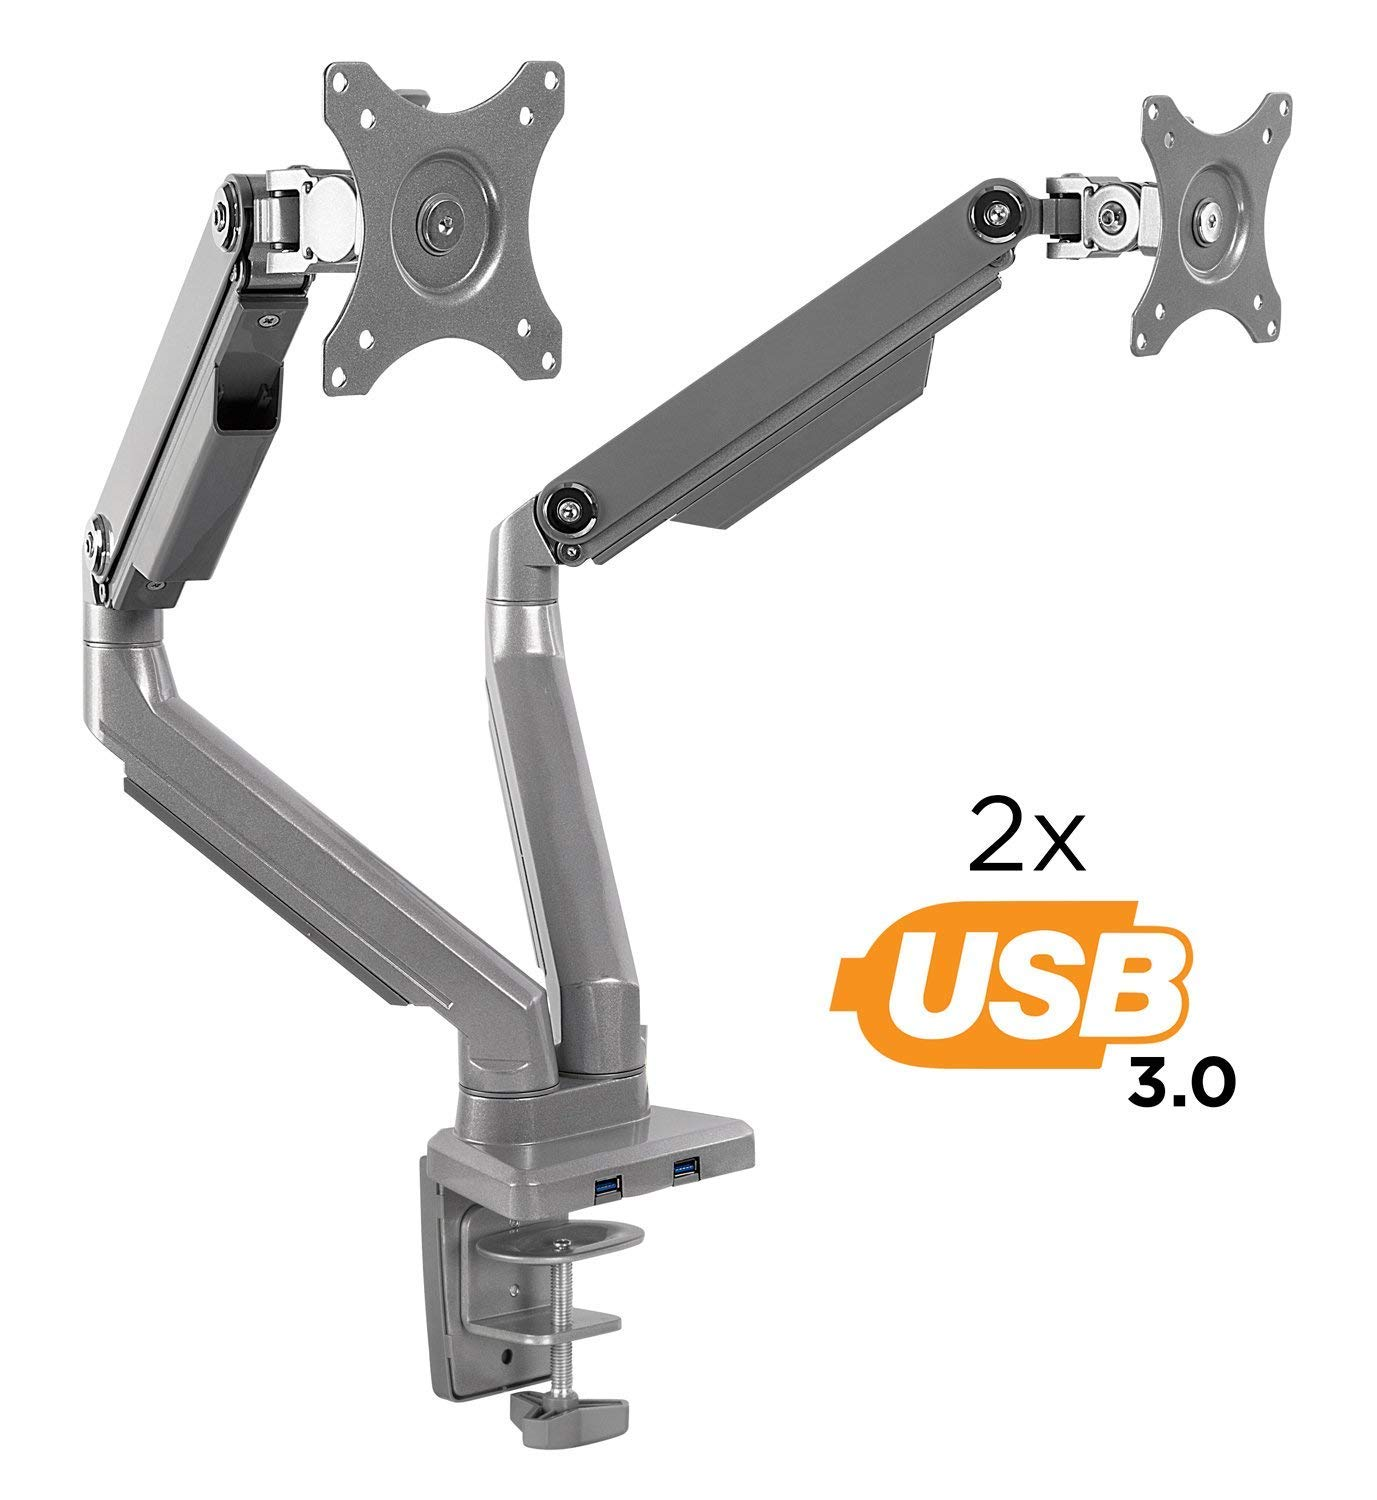 Mount-It! Dual Monitor Arm Mount Desk Stand | 2 x 3.0 USB Ports | Articulating Mechanical Spring Height Adjustable | Fits Two 24 27 29 30 32 Inch VESA 75 100 Compatible Screens | C-Clamp and Grommet